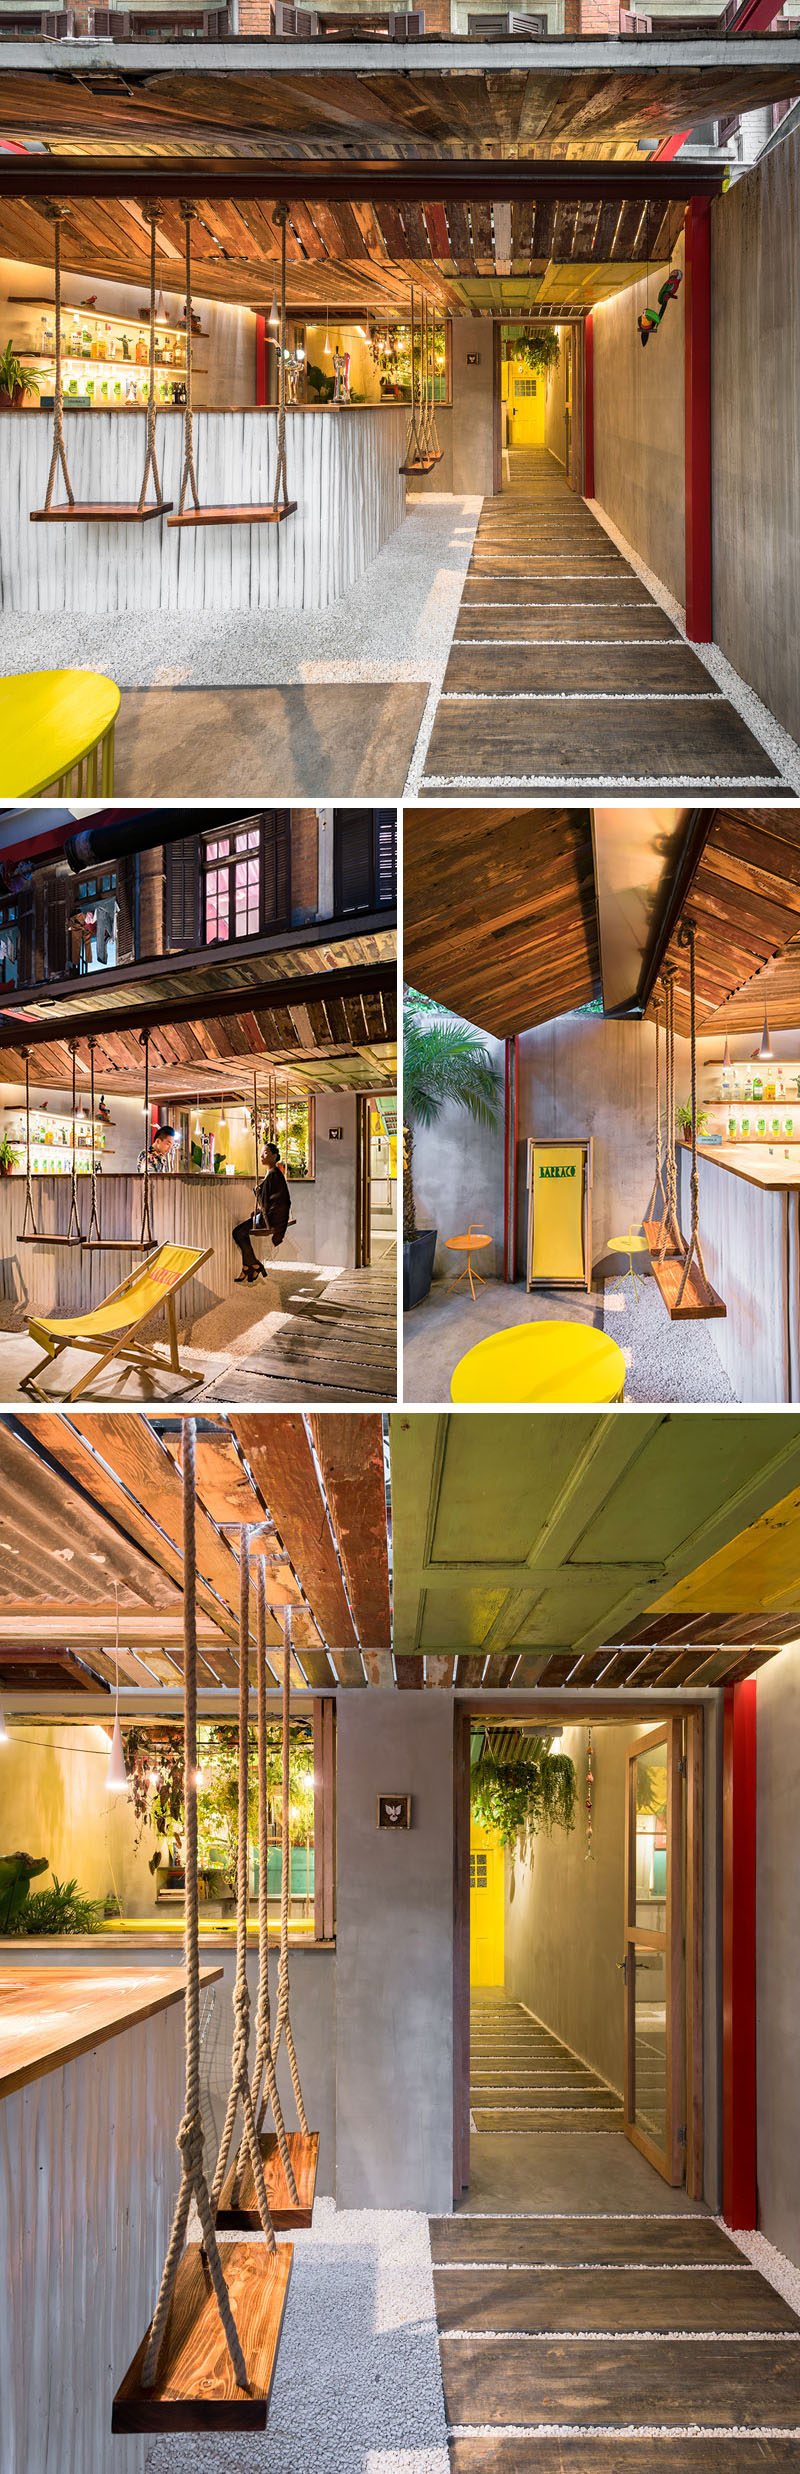 3d Wallpaper Made In China A Tropical Inspired Bar In China Uses Reclaimed Materials